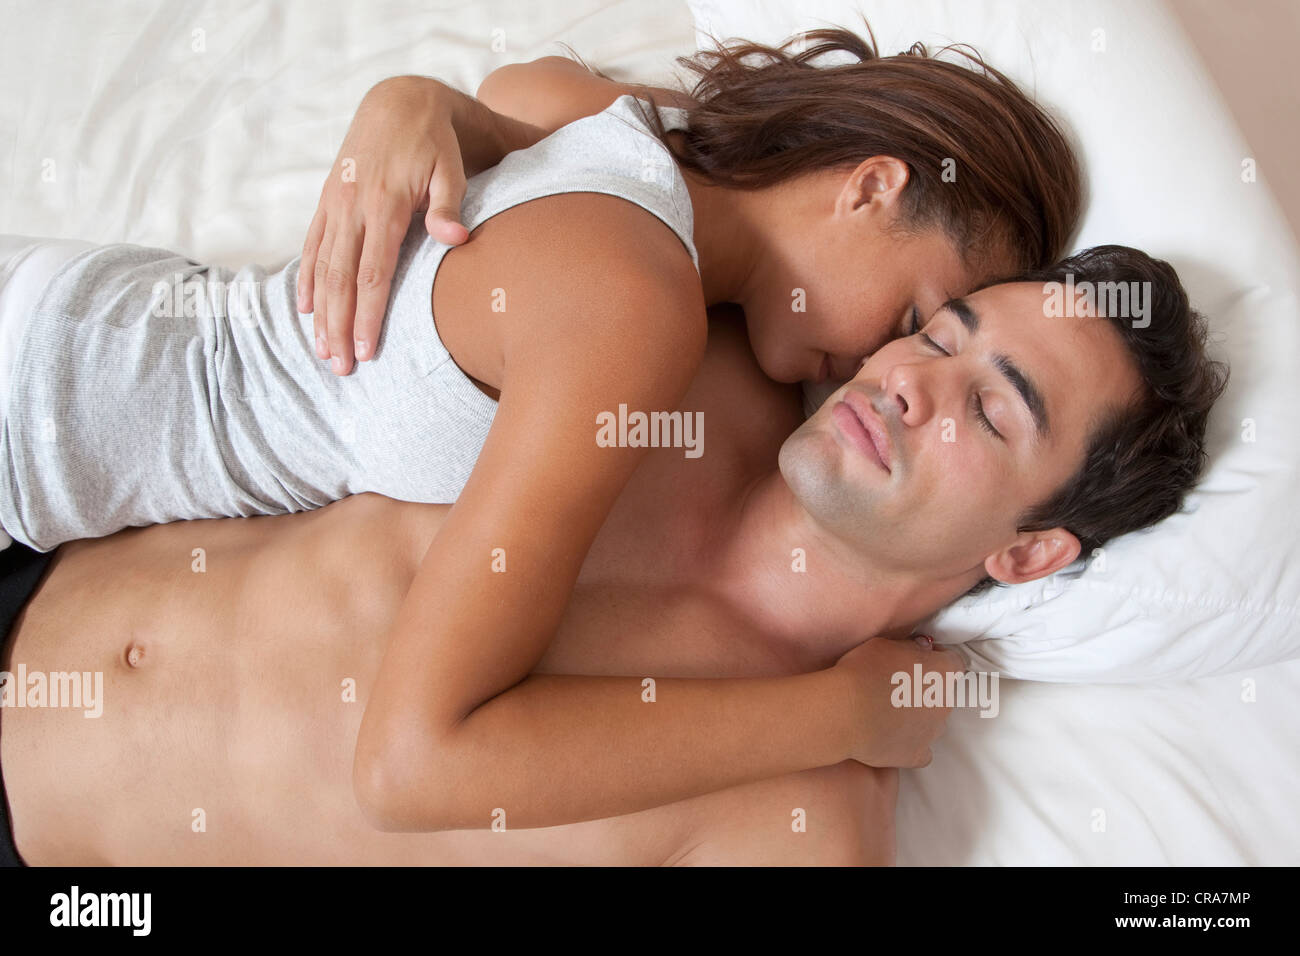 Couple sleeping in bed together - Stock Image